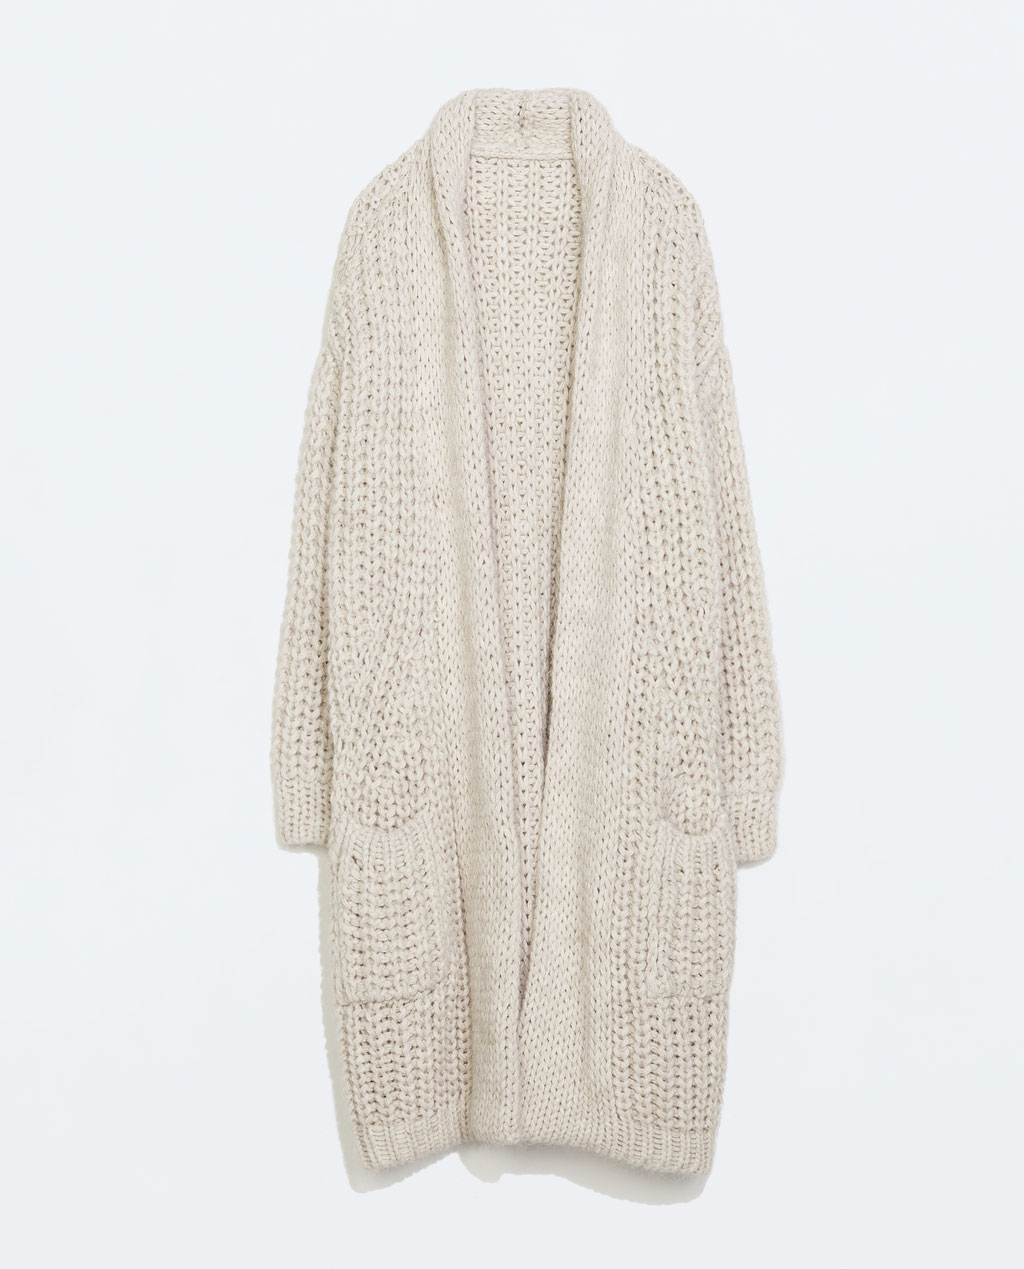 http://www.zara.com/uk/en/woman/knitwear/cardigans/long-knit-coat-with-pockets-c498027p2349515.html